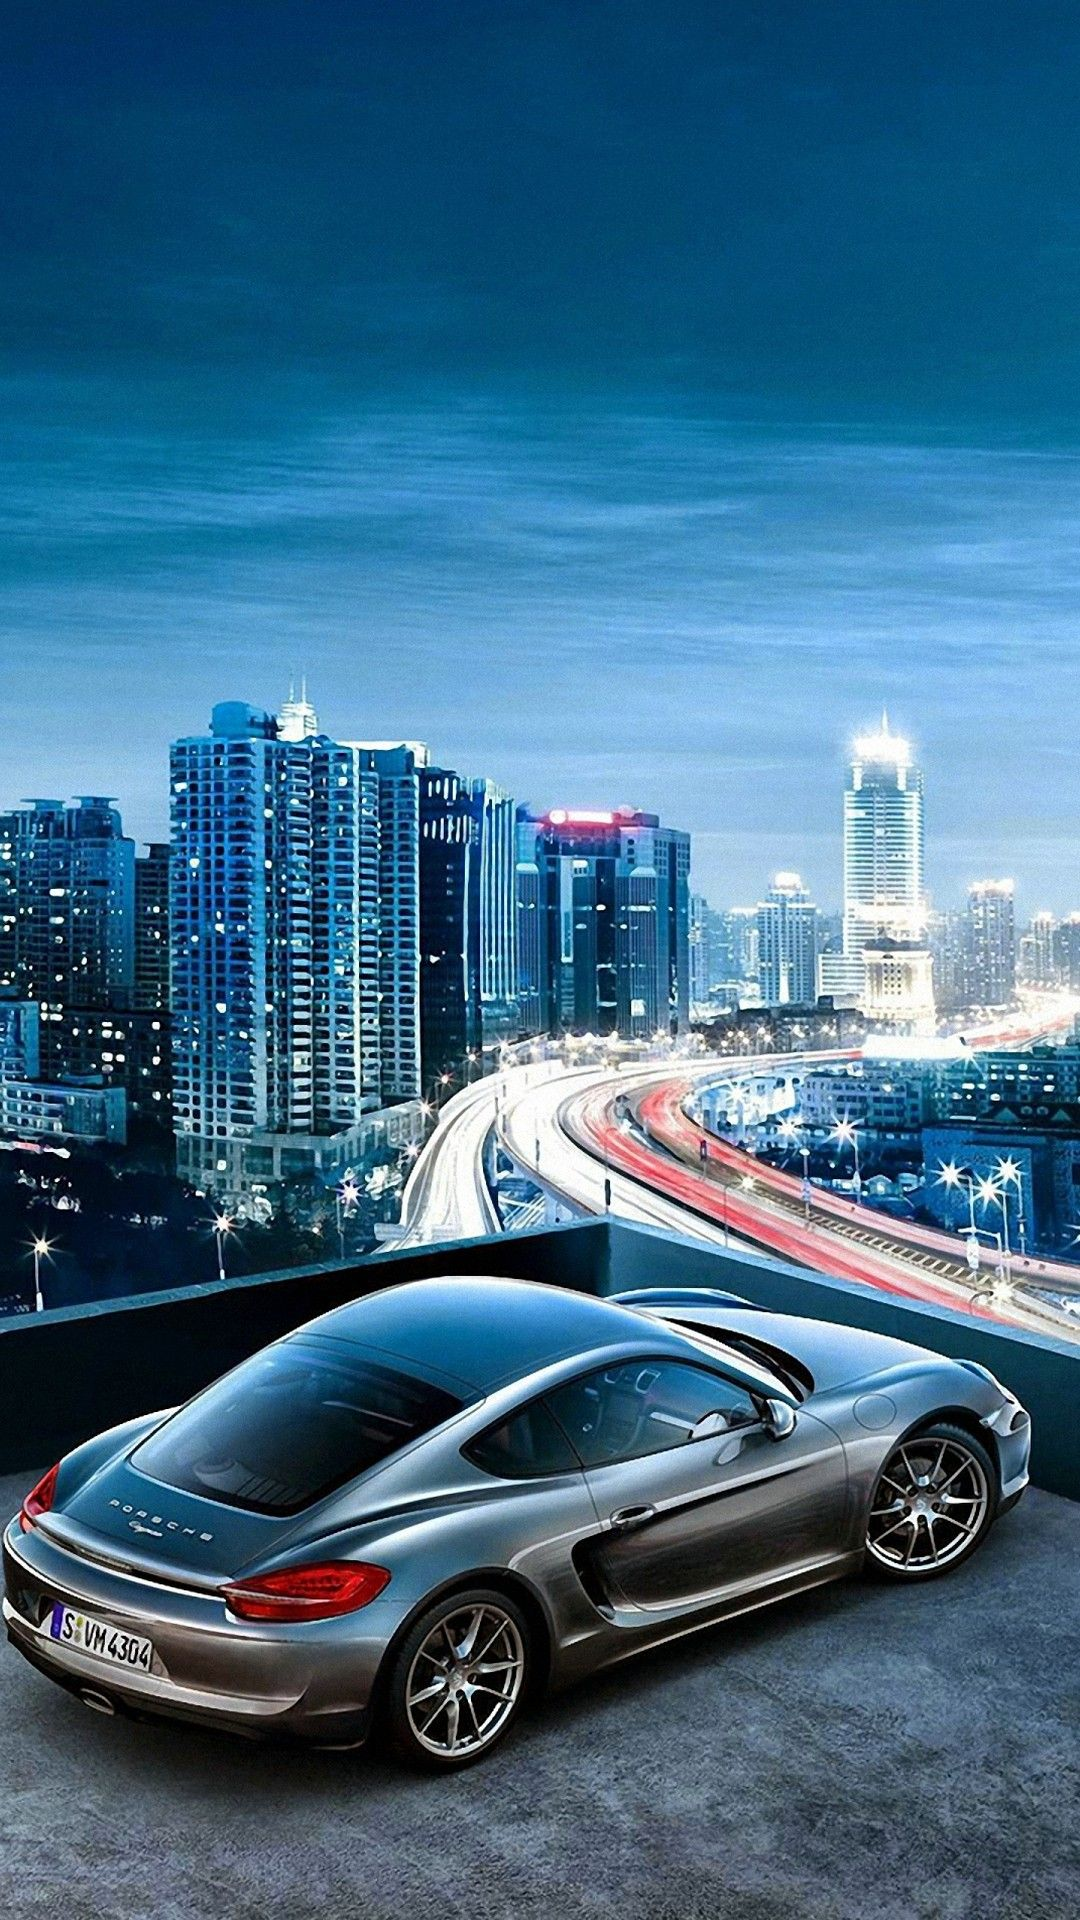 Android Wallpaper Cars Best Android Wallpapers Car Iphone